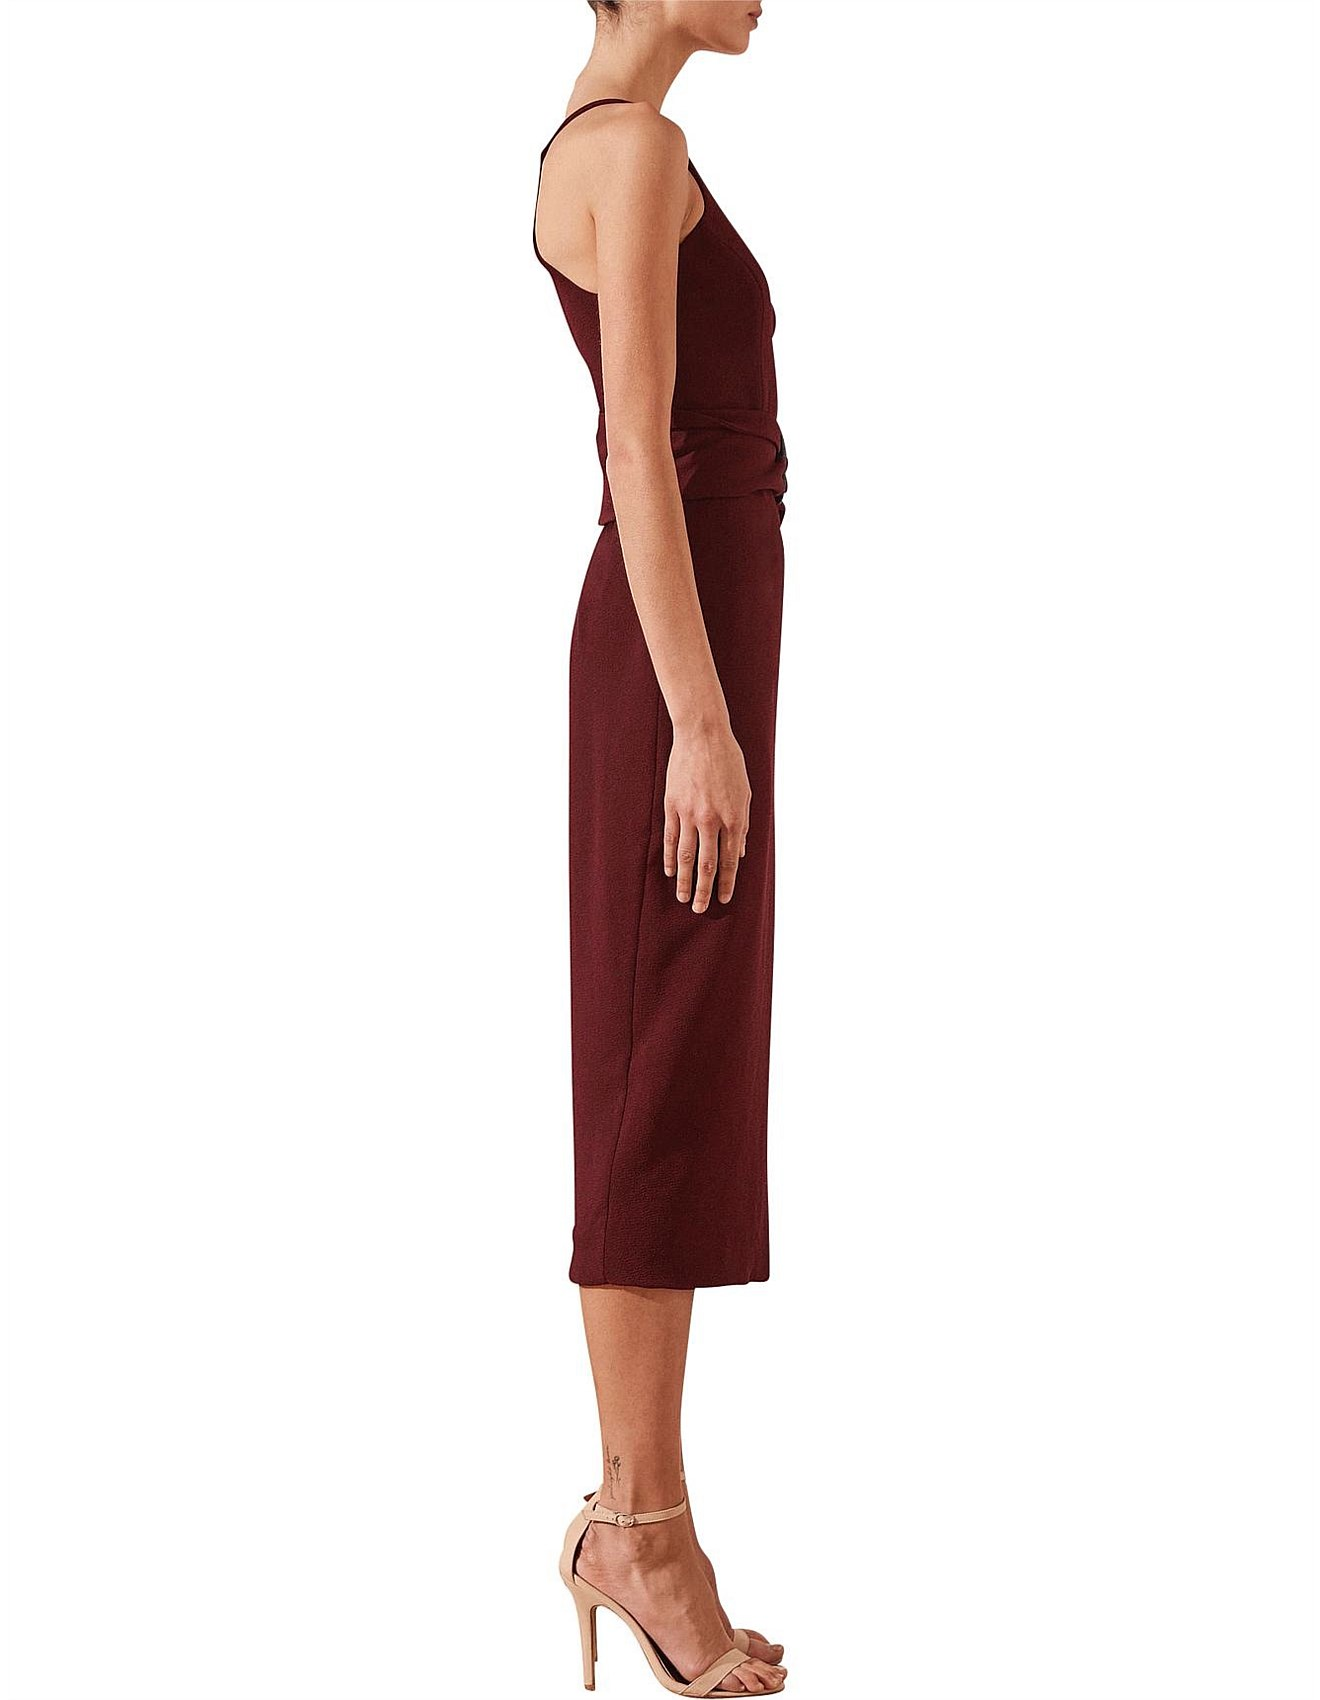 Andrea One Shoulder Fitted Midi Dress With Belt